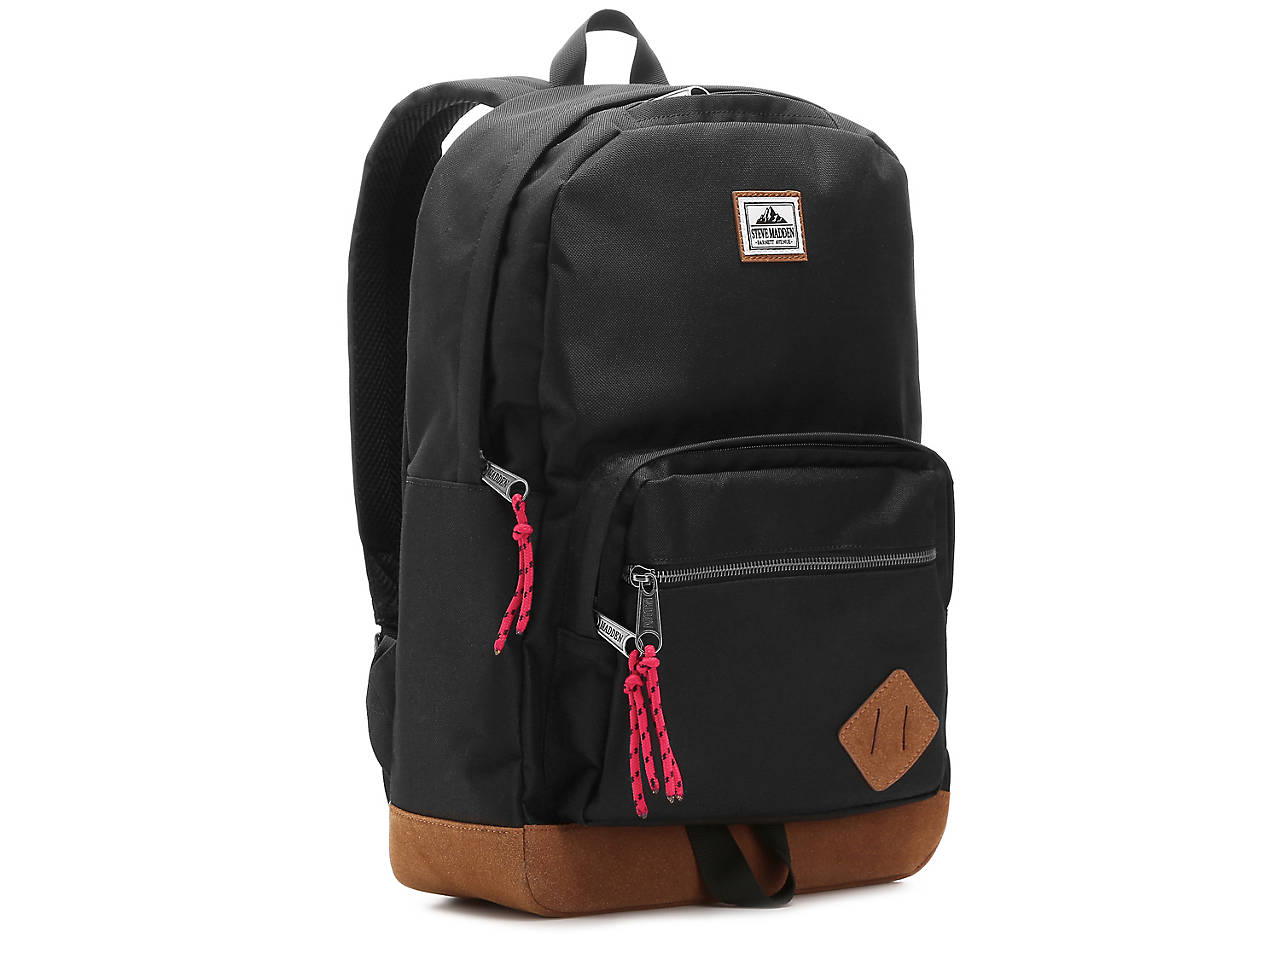 037d266fc9 Steve Madden Classic Backpack Men's Handbags & Accessories | DSW